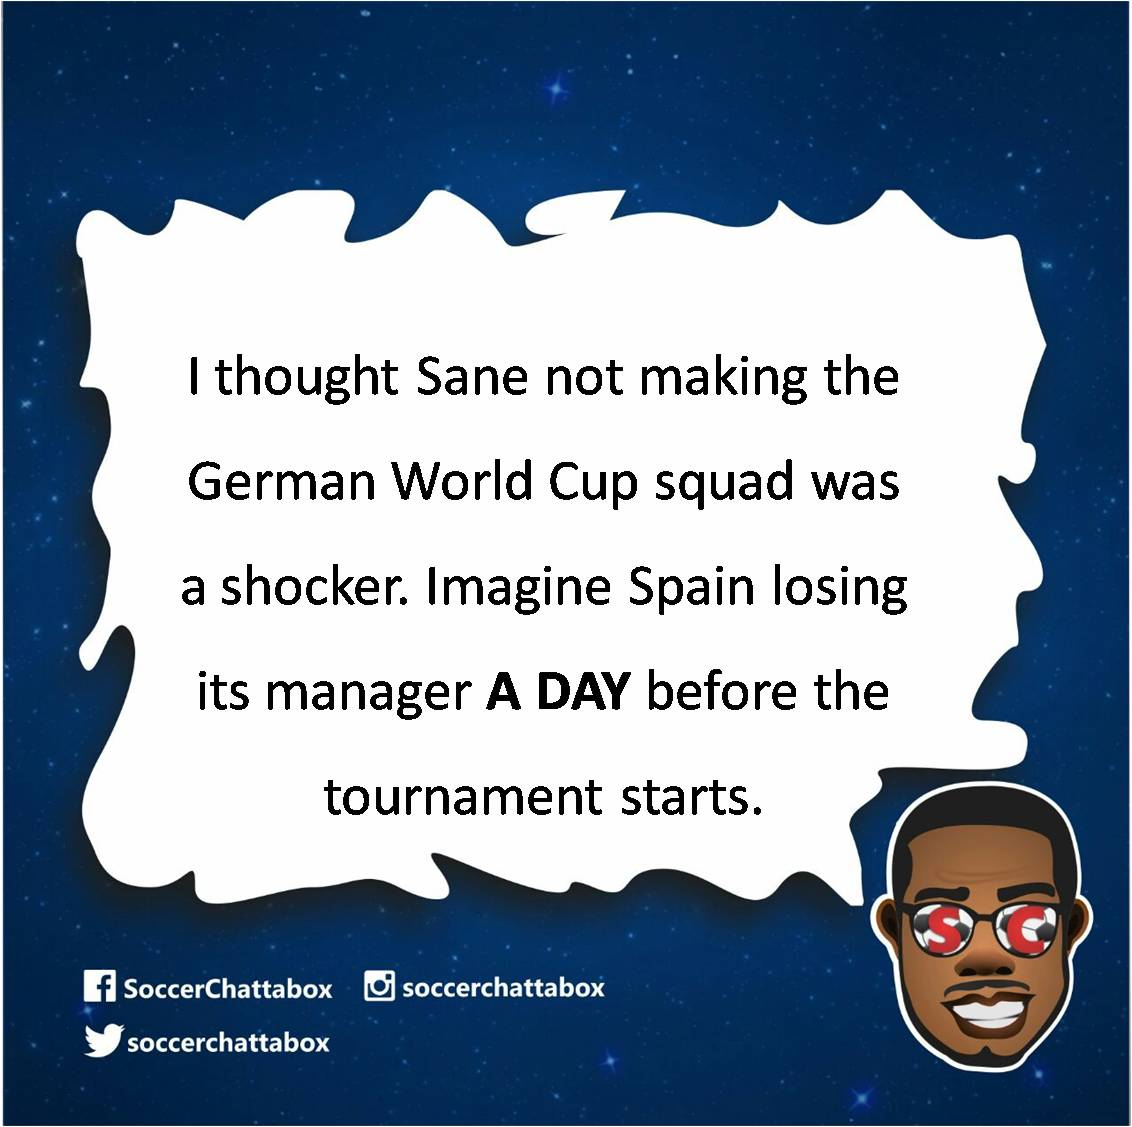 #SCThoughts LOL...What? Because he got the Madrid job? He starts that one in July!!! How is this not catastrophic? #Spain #Madrid #RealMadrid  #WorldCup  #FIFA #FIFAWorldCup #Russia2018 #FIFAWorldCup2018 #WorldCup2018 #Lopetegui #JulenLopetegui #Hierro<br>http://pic.twitter.com/2SicLBR4JF